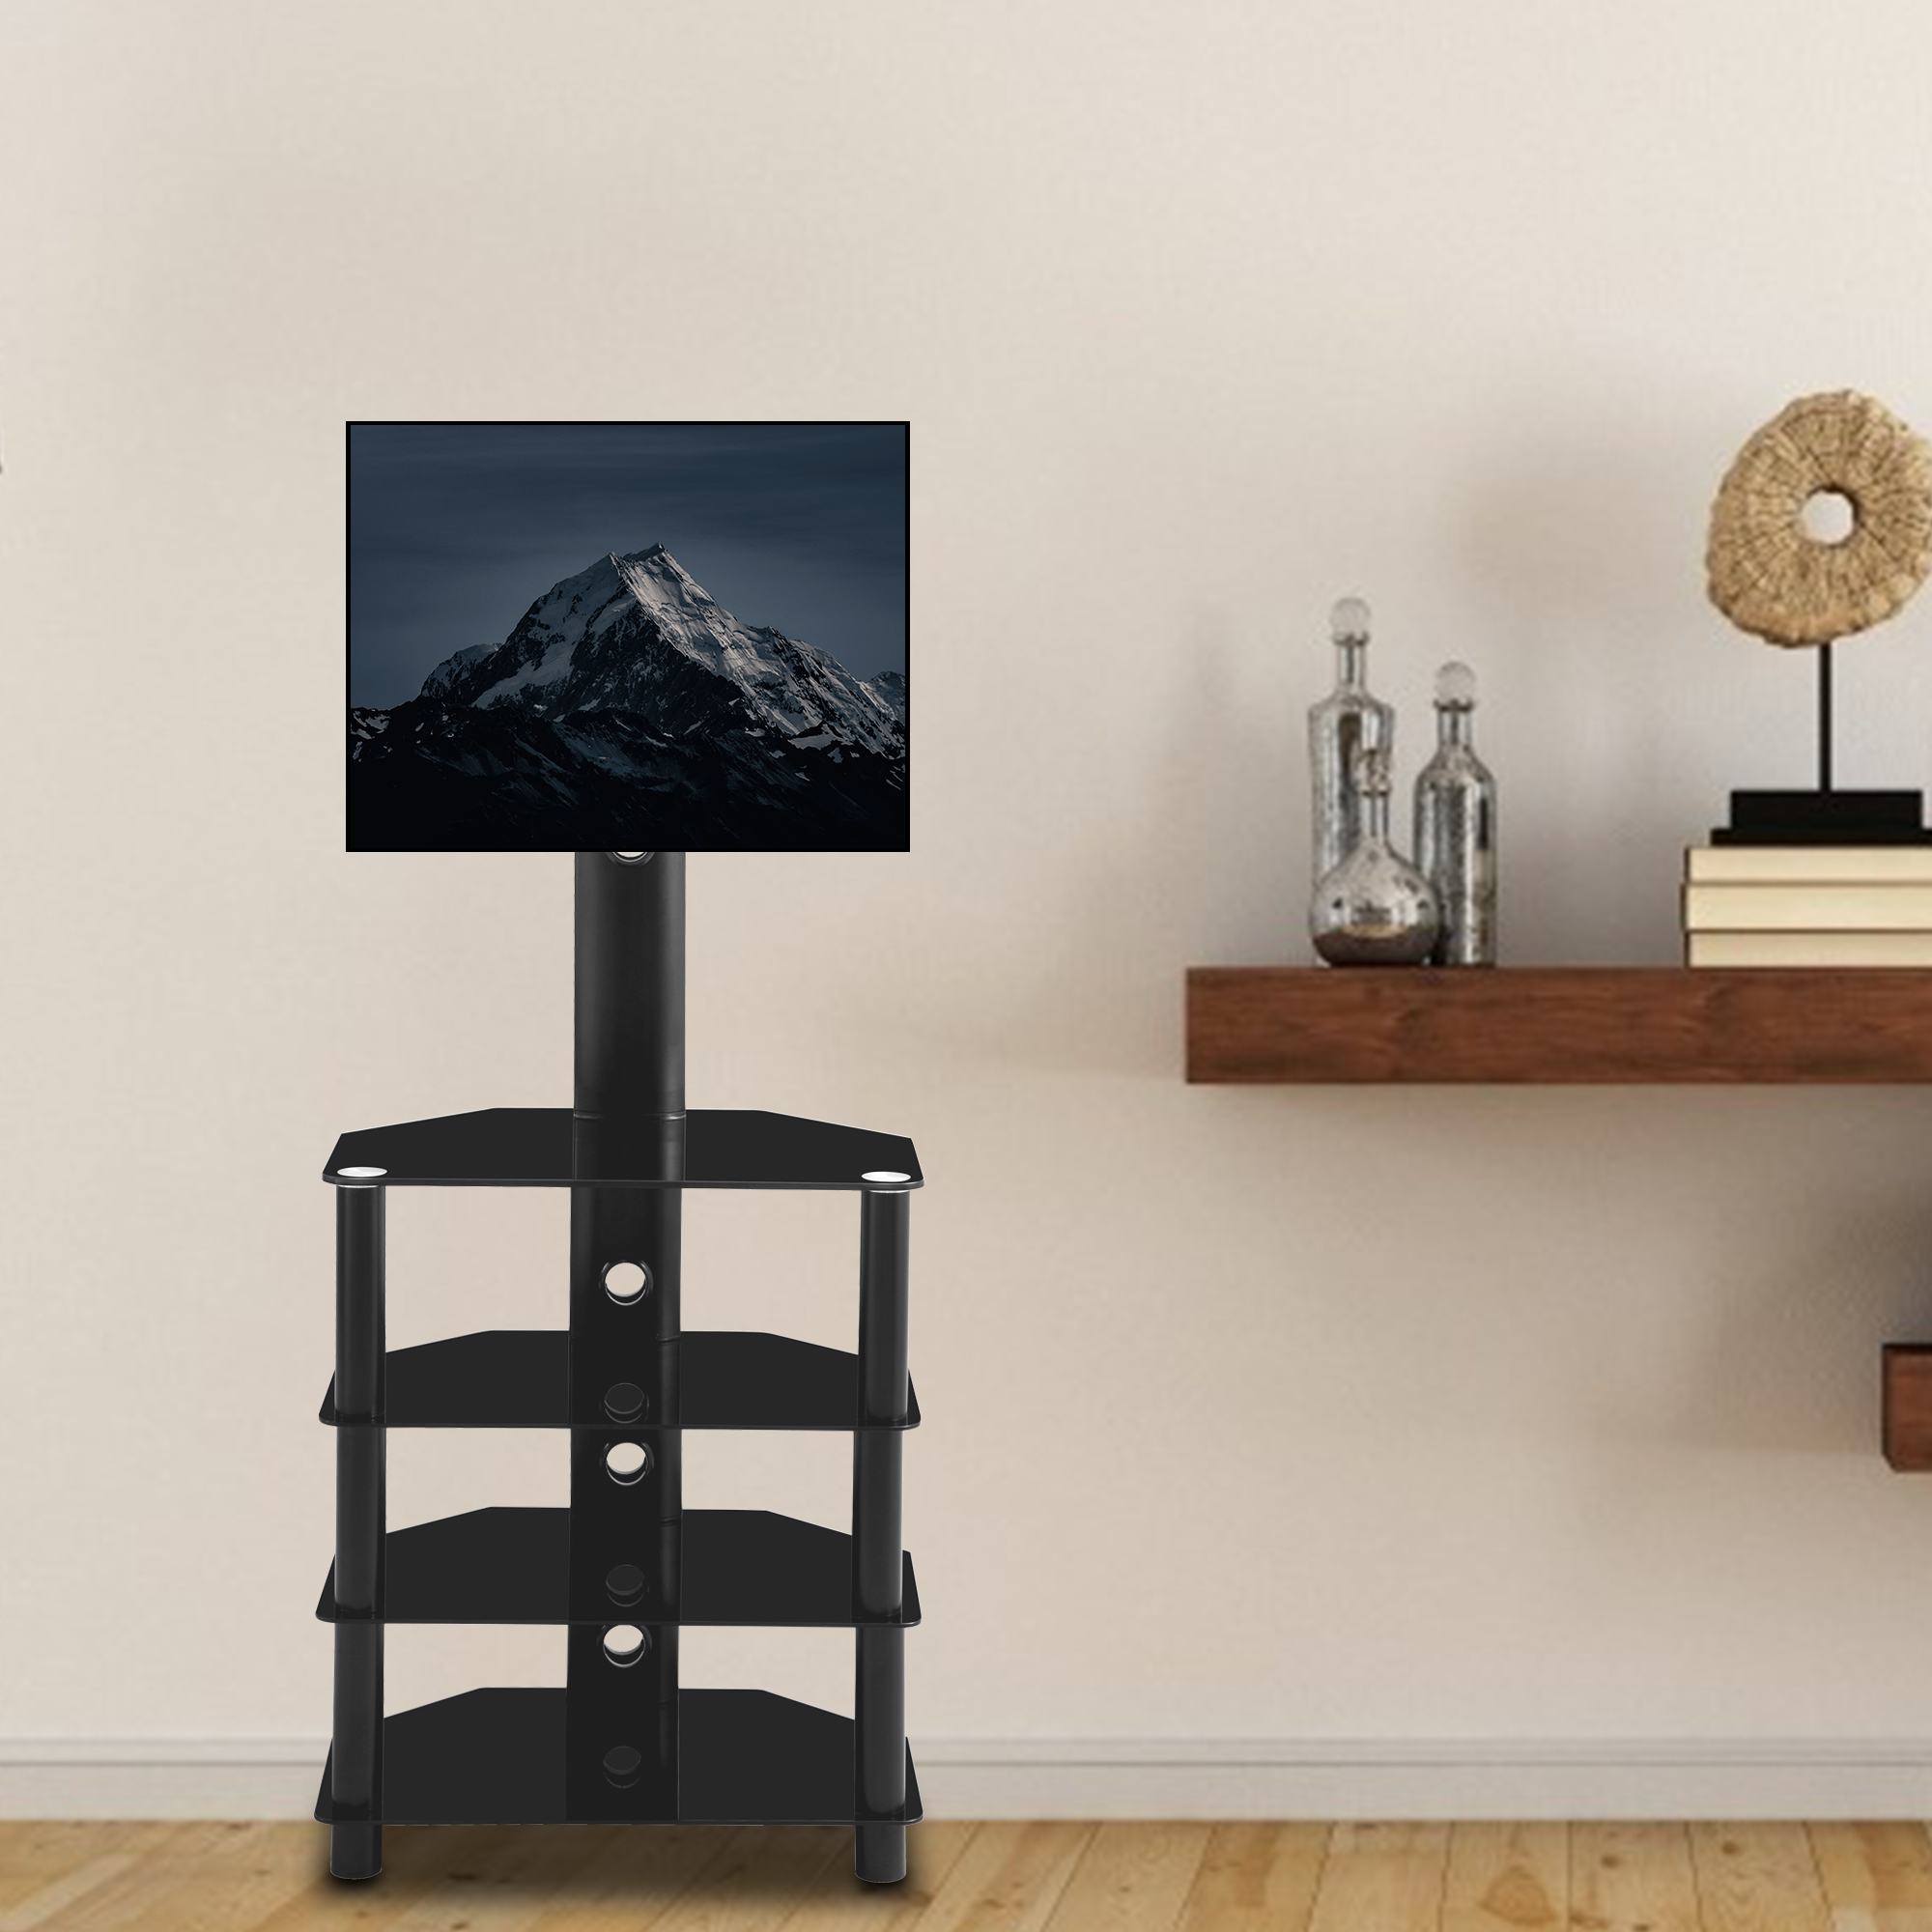 [US Direct] Black Multi-function Angle and height adjustable 4-Tier tempered glass metal frame Floor TV stand, LCD/Plasma TV bracket Four Layers Of Glass Shelf For Multiple Media Devices Panel TV and Curved TV